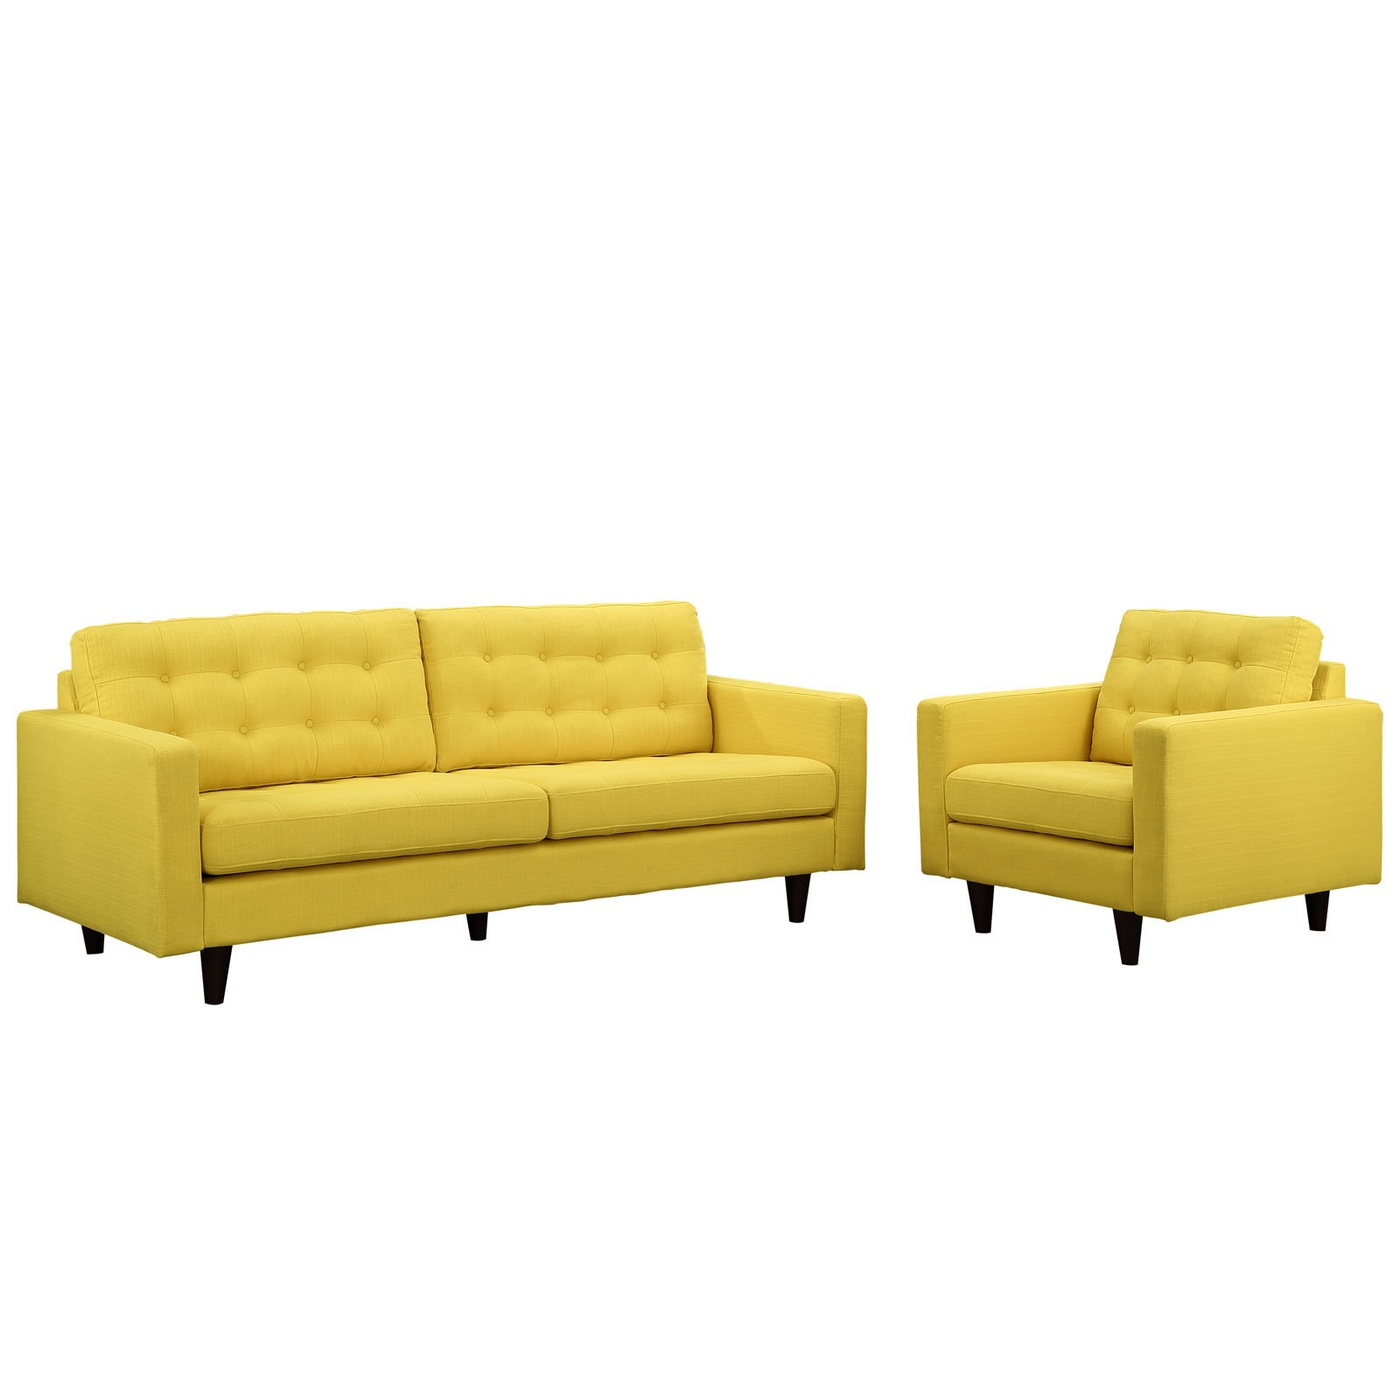 Empress modern 2pc button tufted leather sofa and armchair for Tufted couch set